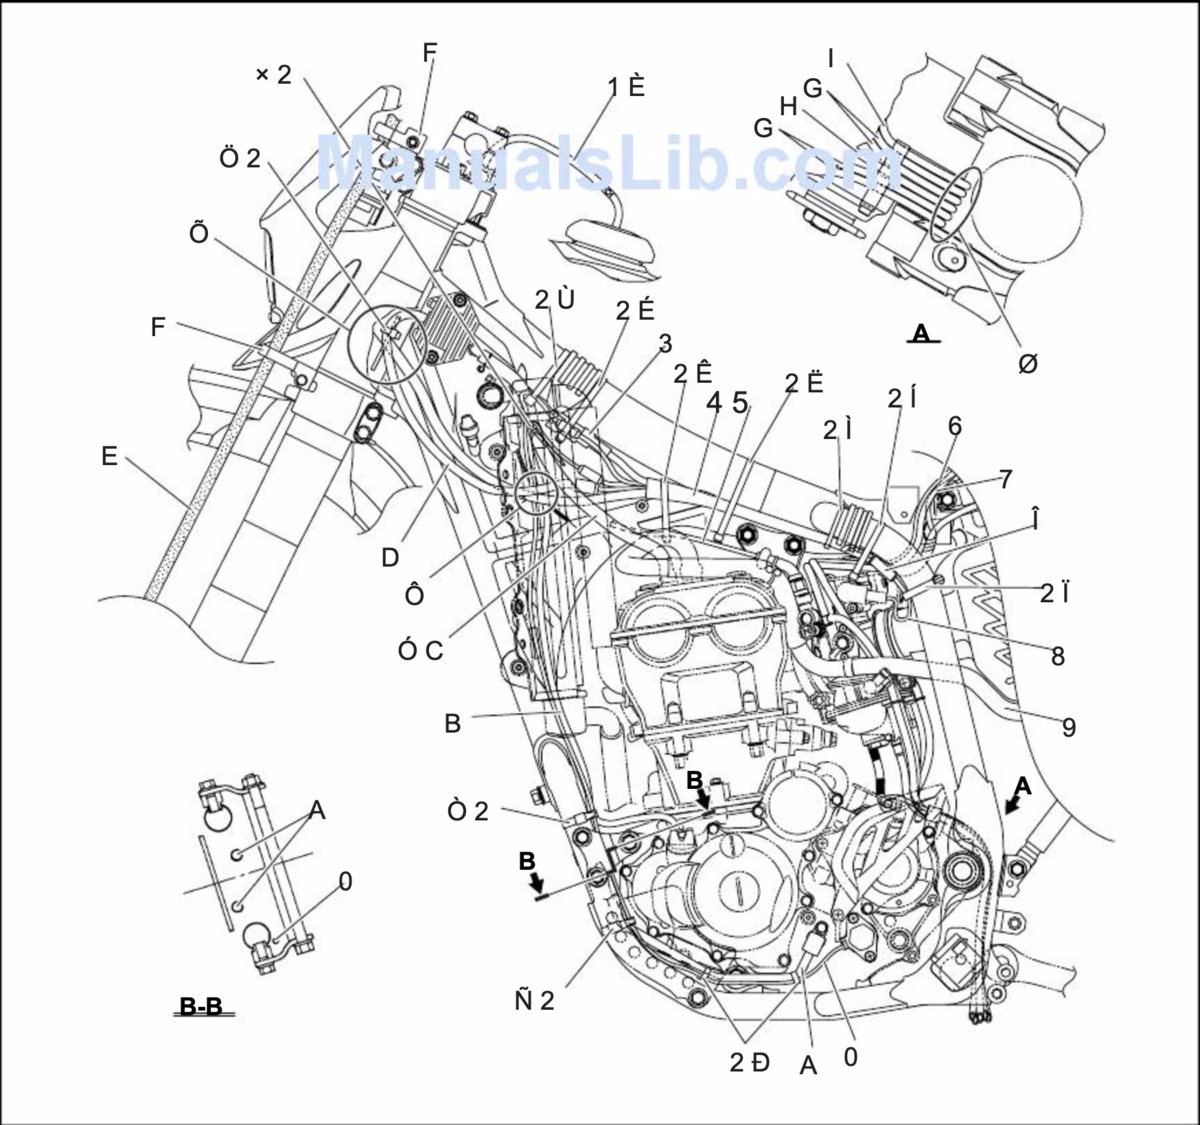 2004 wr450 wiring harness and cable routing wr400f 426f 450f 2004 WR450F Review screen shot 2019 02 02 at 3 42 16 am png